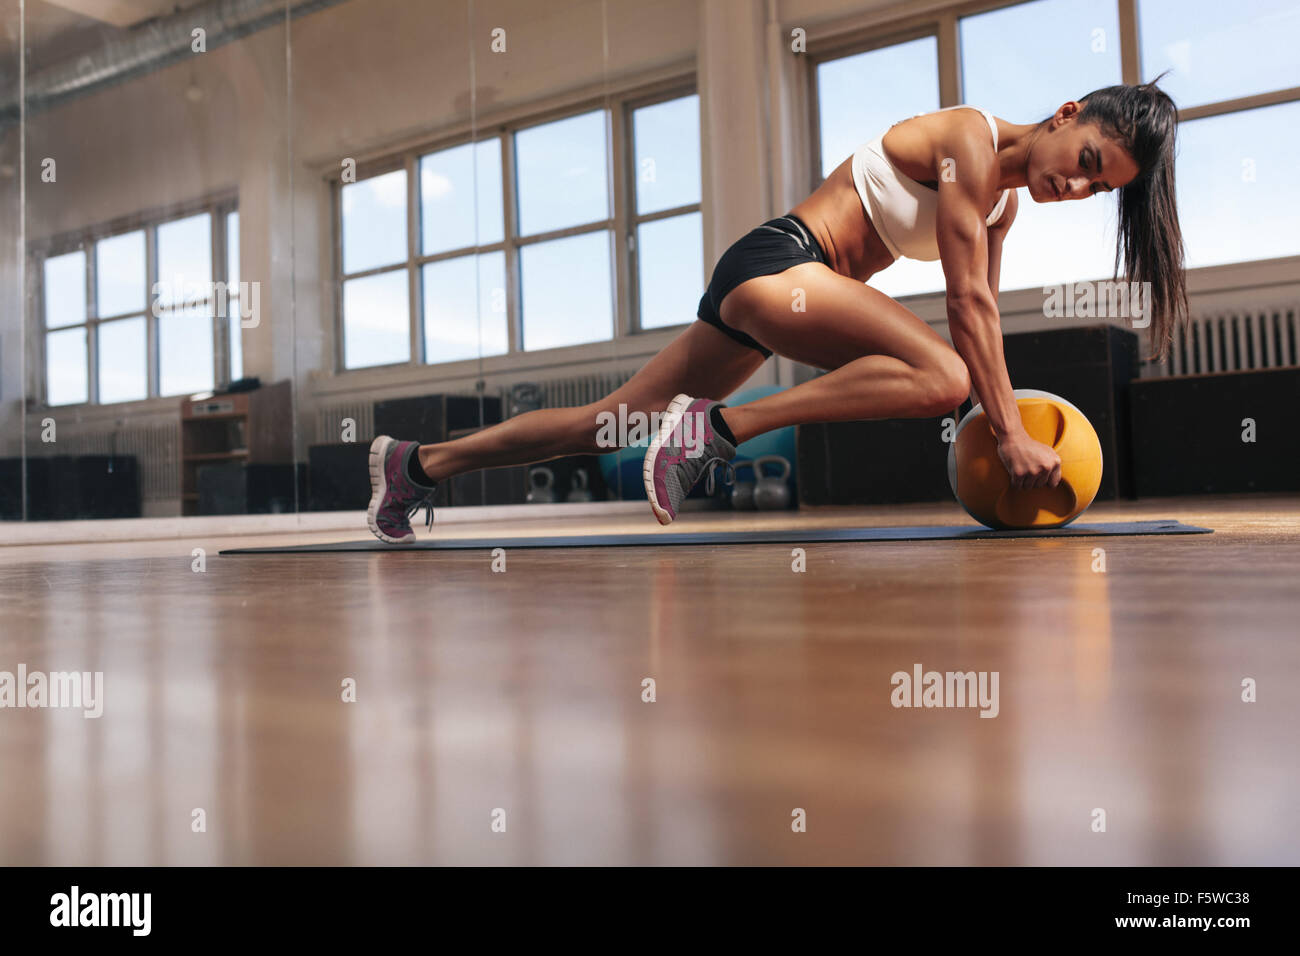 Woman doing intense core exercise on fitness mat. Muscular young woman doing workout at gym. - Stock Image